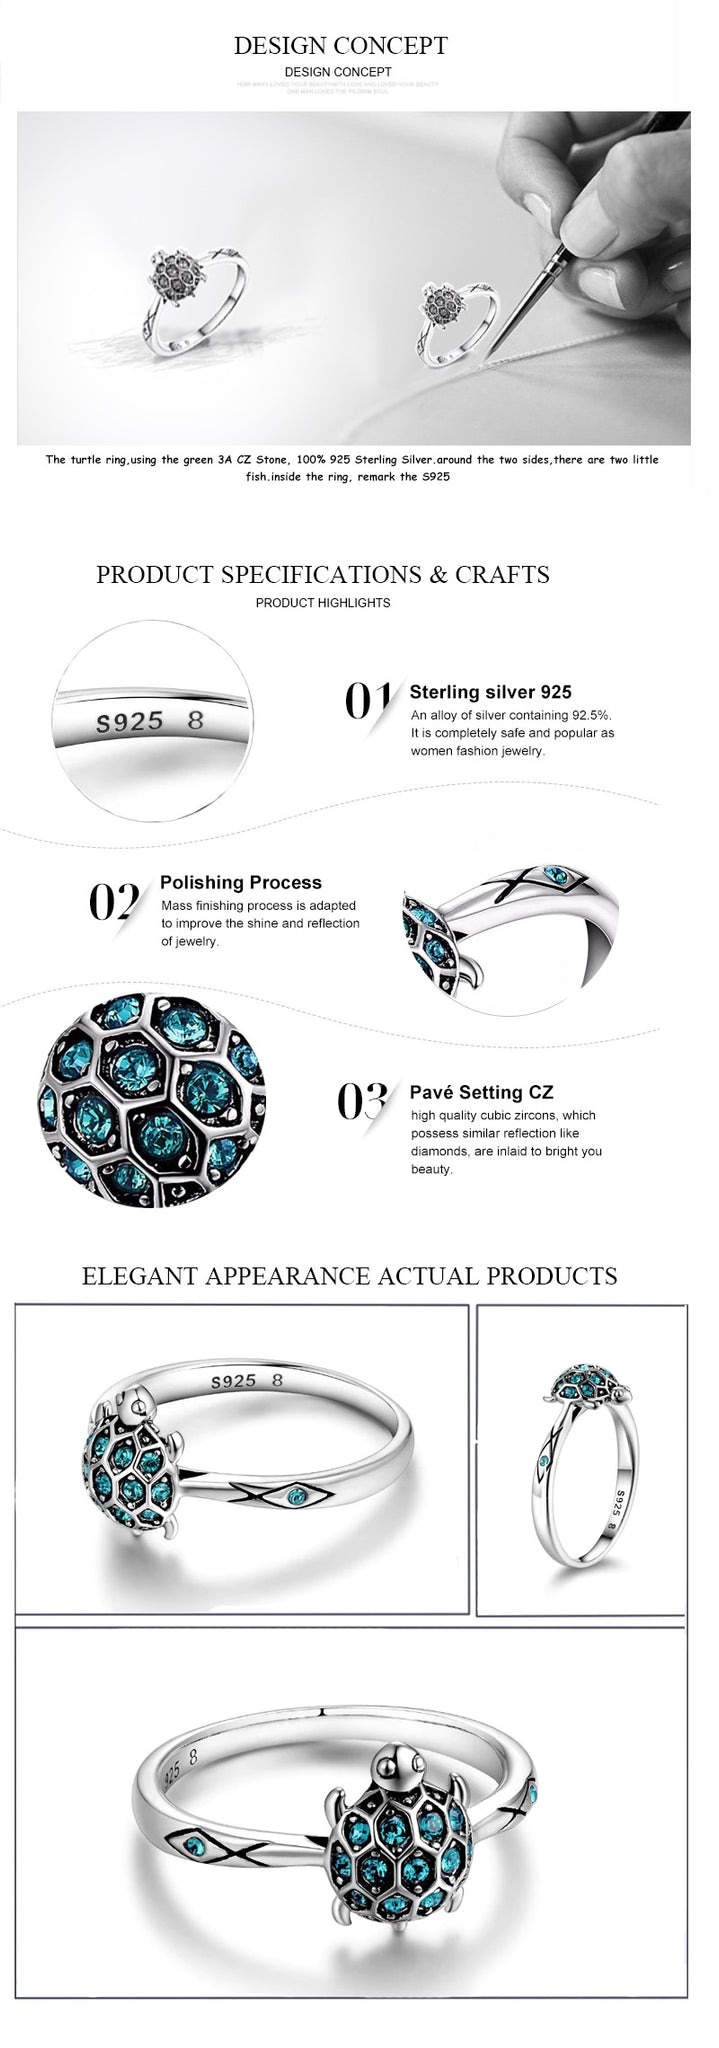 Description of the Crystal Turtle Ring with details